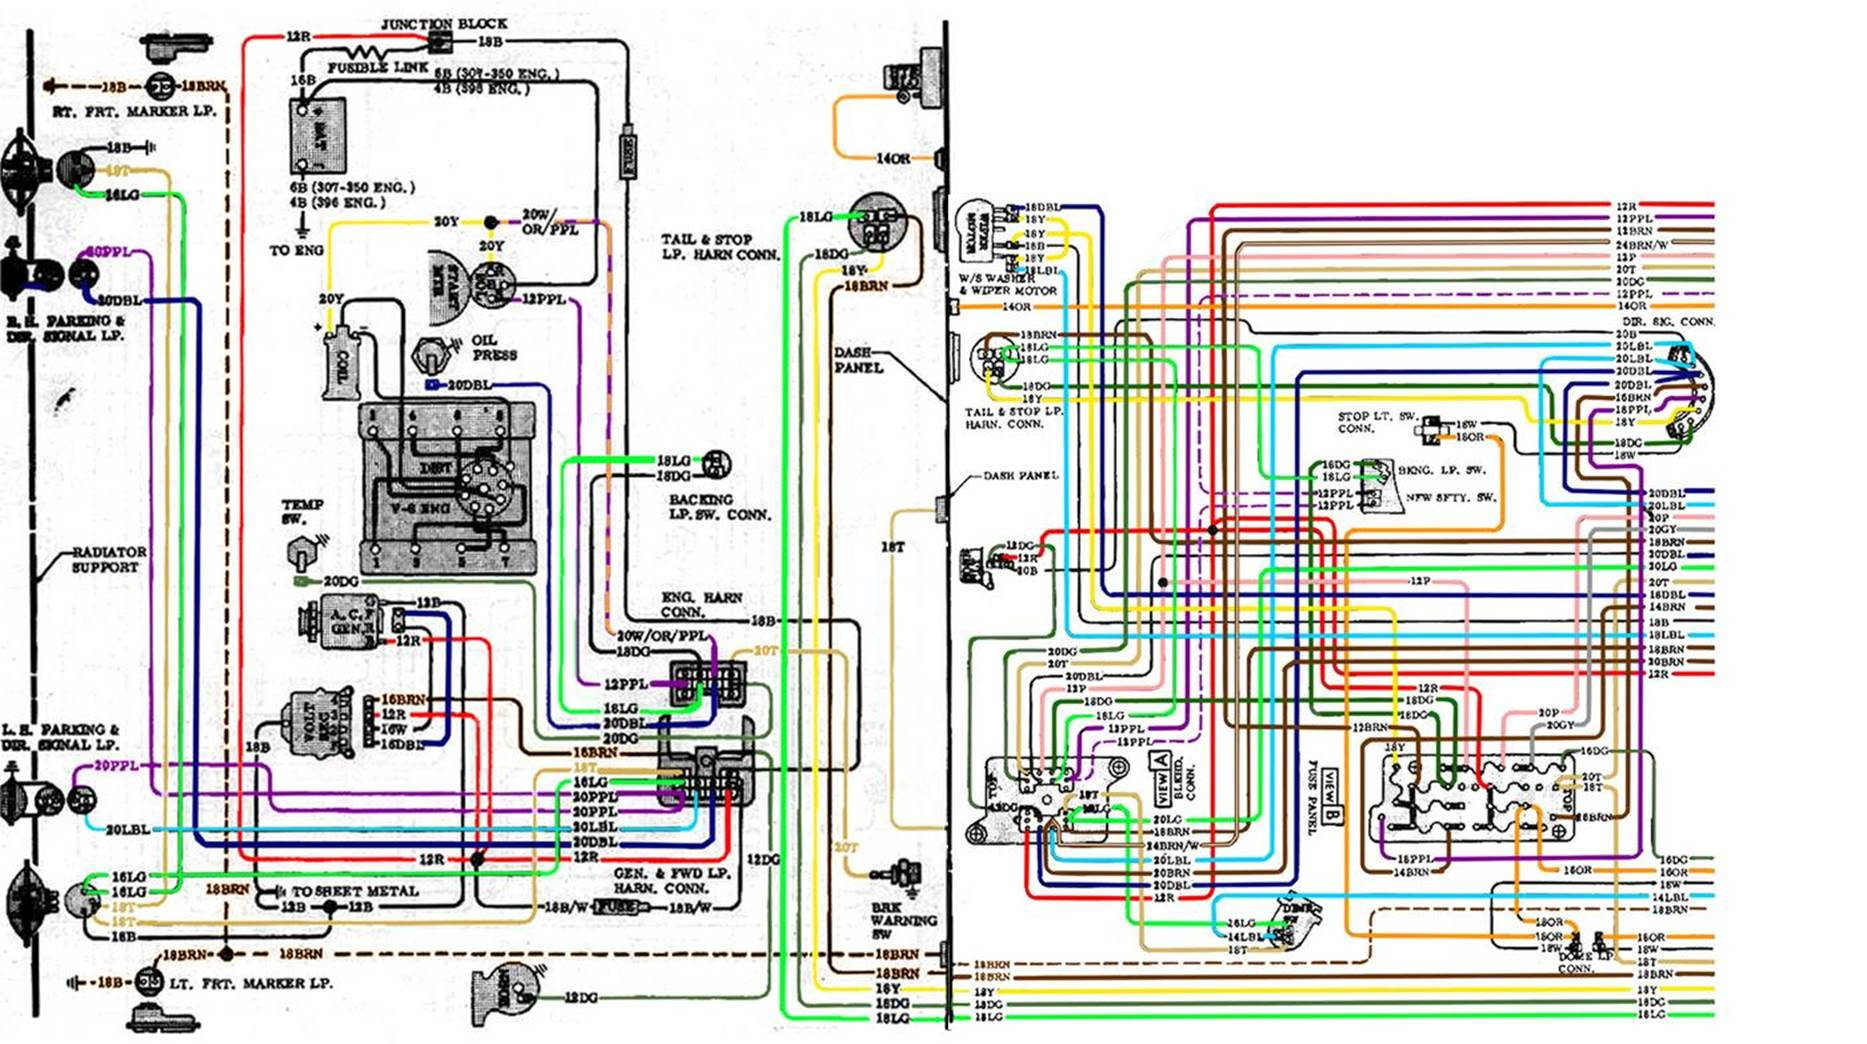 68 Chevy Malibu Wiring Diagram Reveolution Of 2012 Truck 67 72 Rh Outintheshop Com 2005